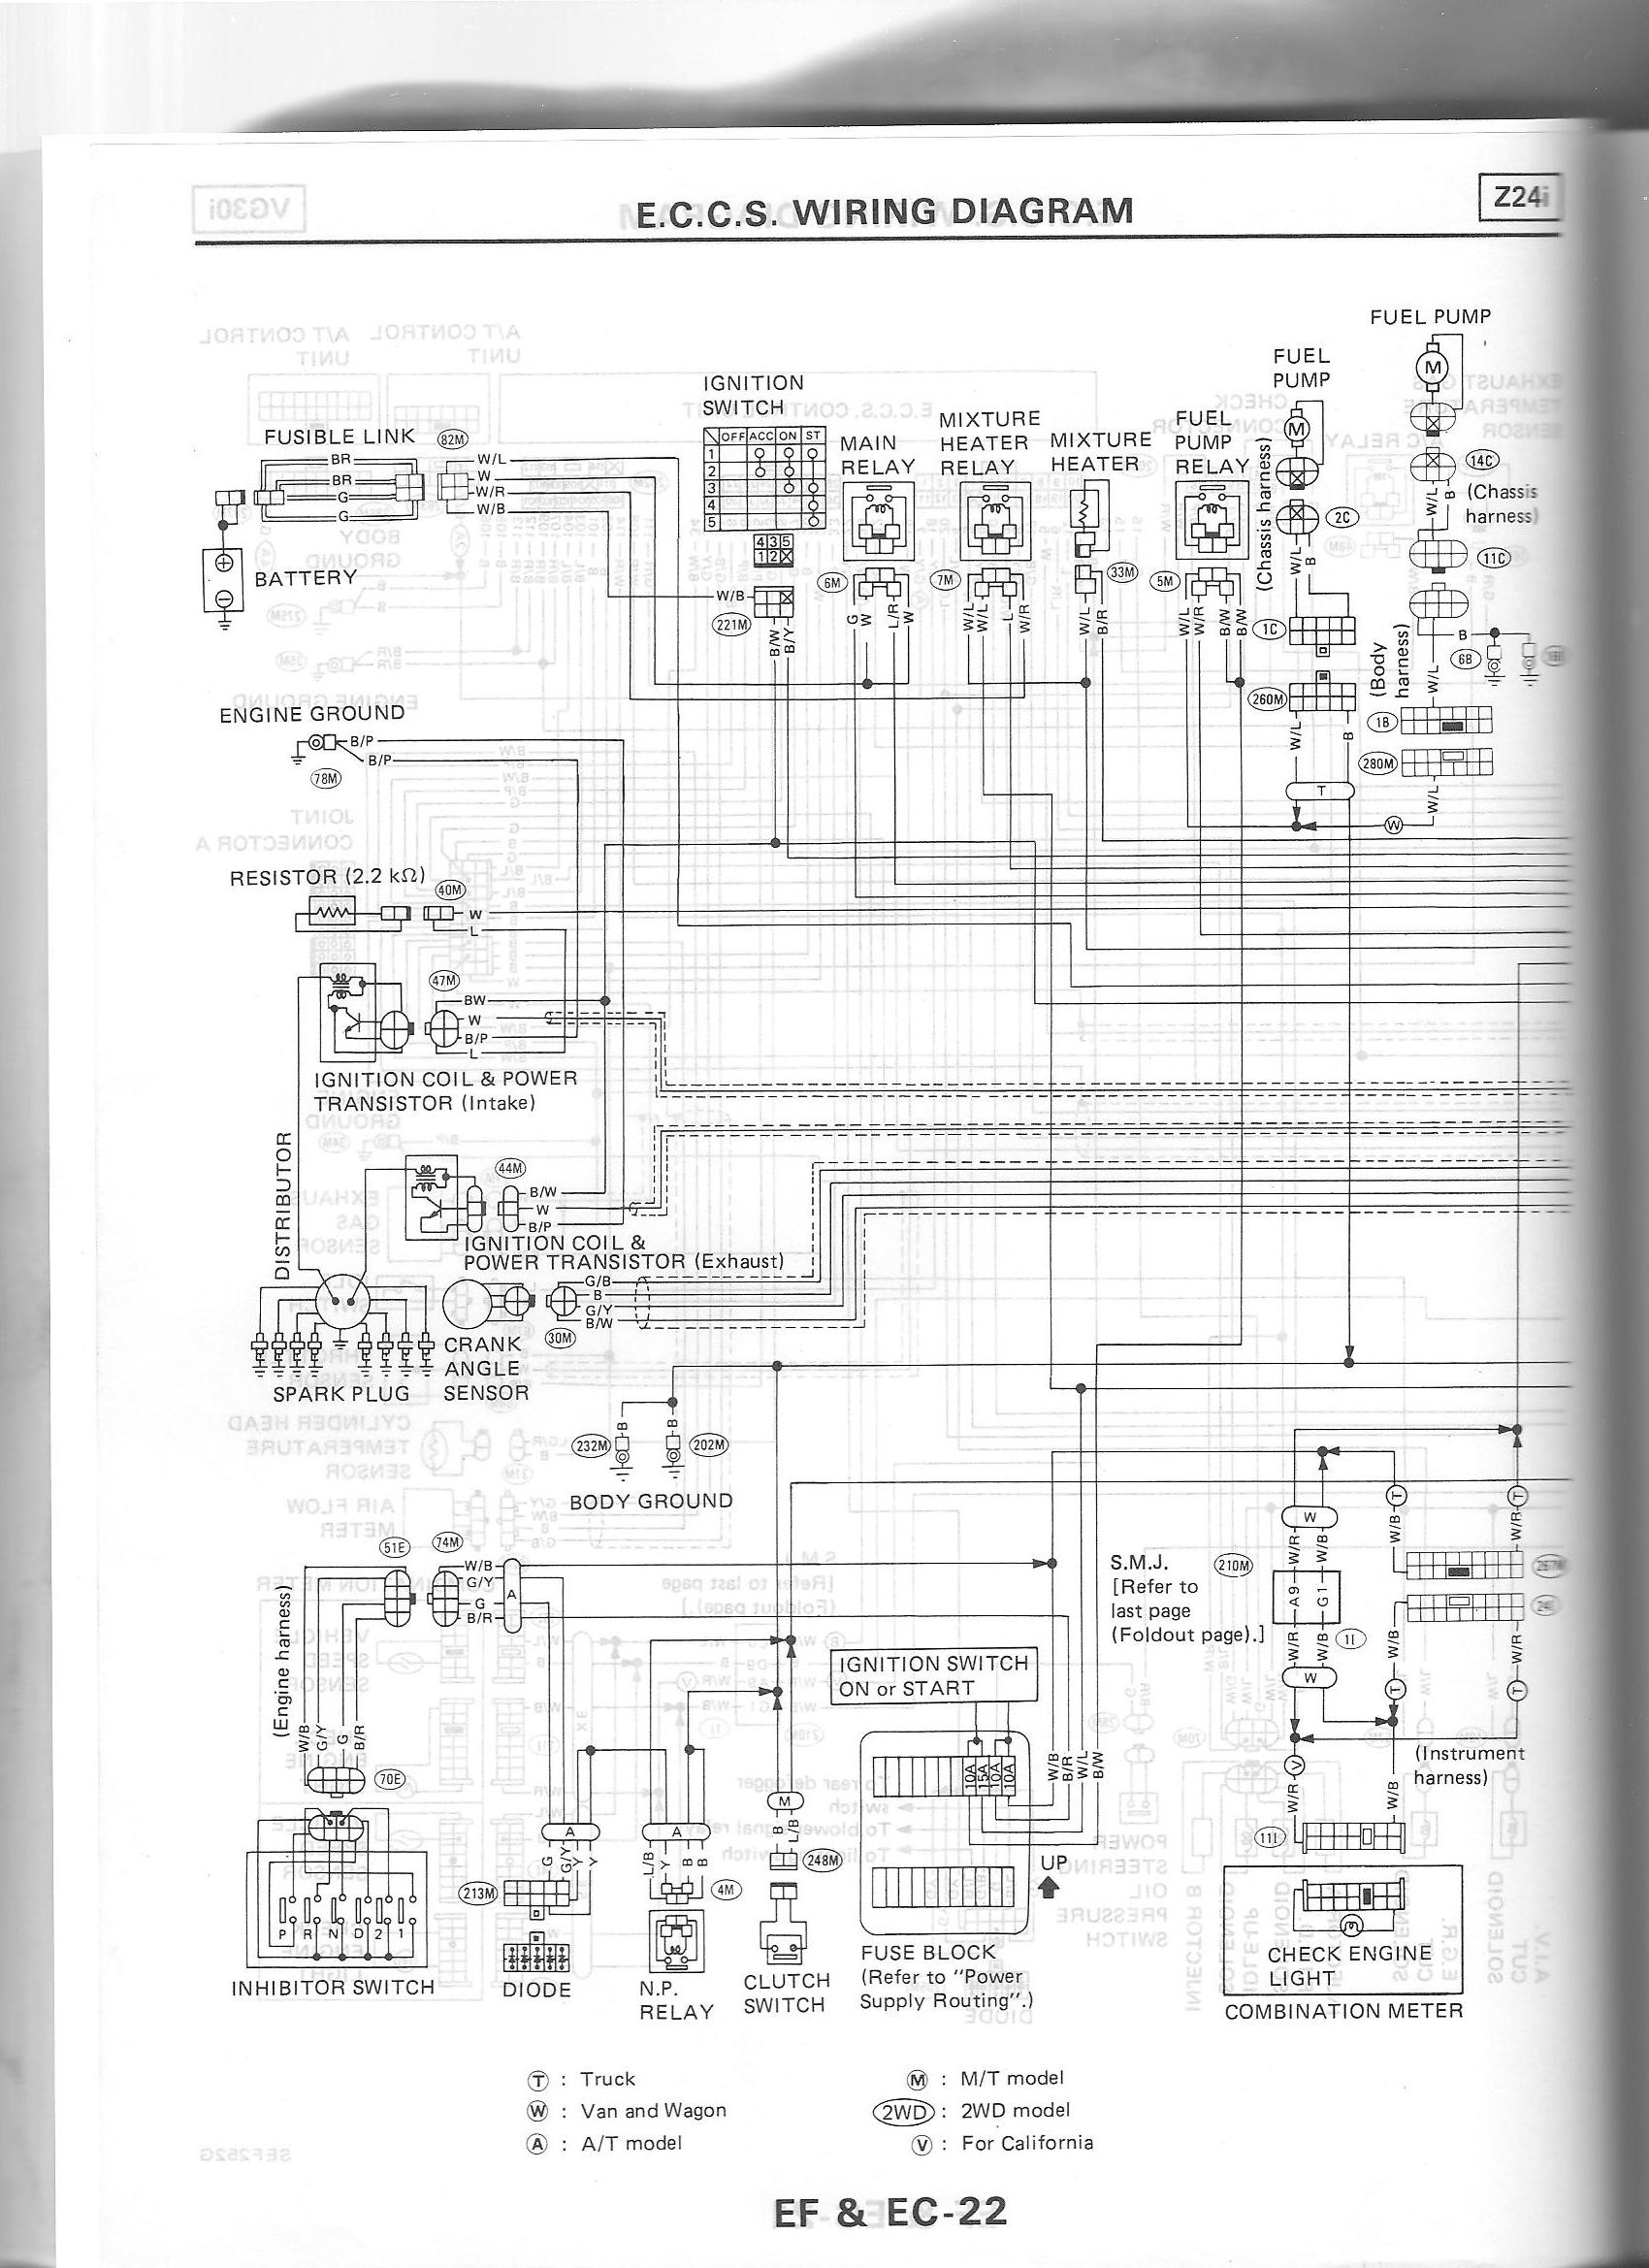 hight resolution of 89 nissan 300zx diagram wiring diagram used 89 nissan 300zx diagram